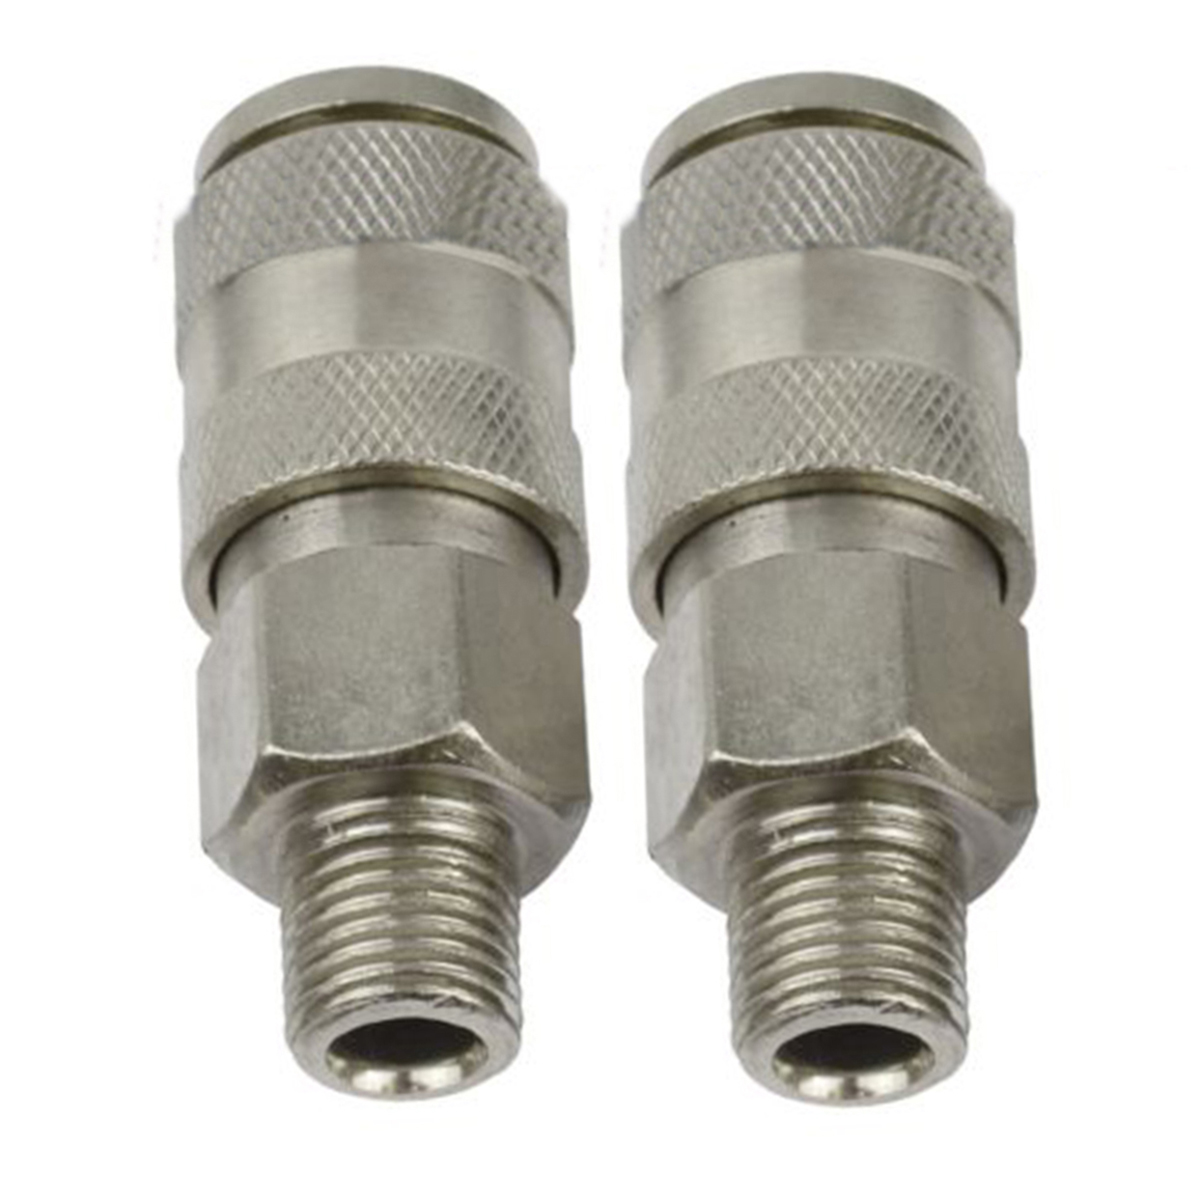 2pcs Pneumatic Parts Air Line Hose Connector Euro Fitting Female Quick Release Set with 1/4 BSP Male Thread 5pcs hvff 08 pneumatic valve control hvff 8mm tube pipe hose quick connector hand valves plastic pneumatic hose air fitting